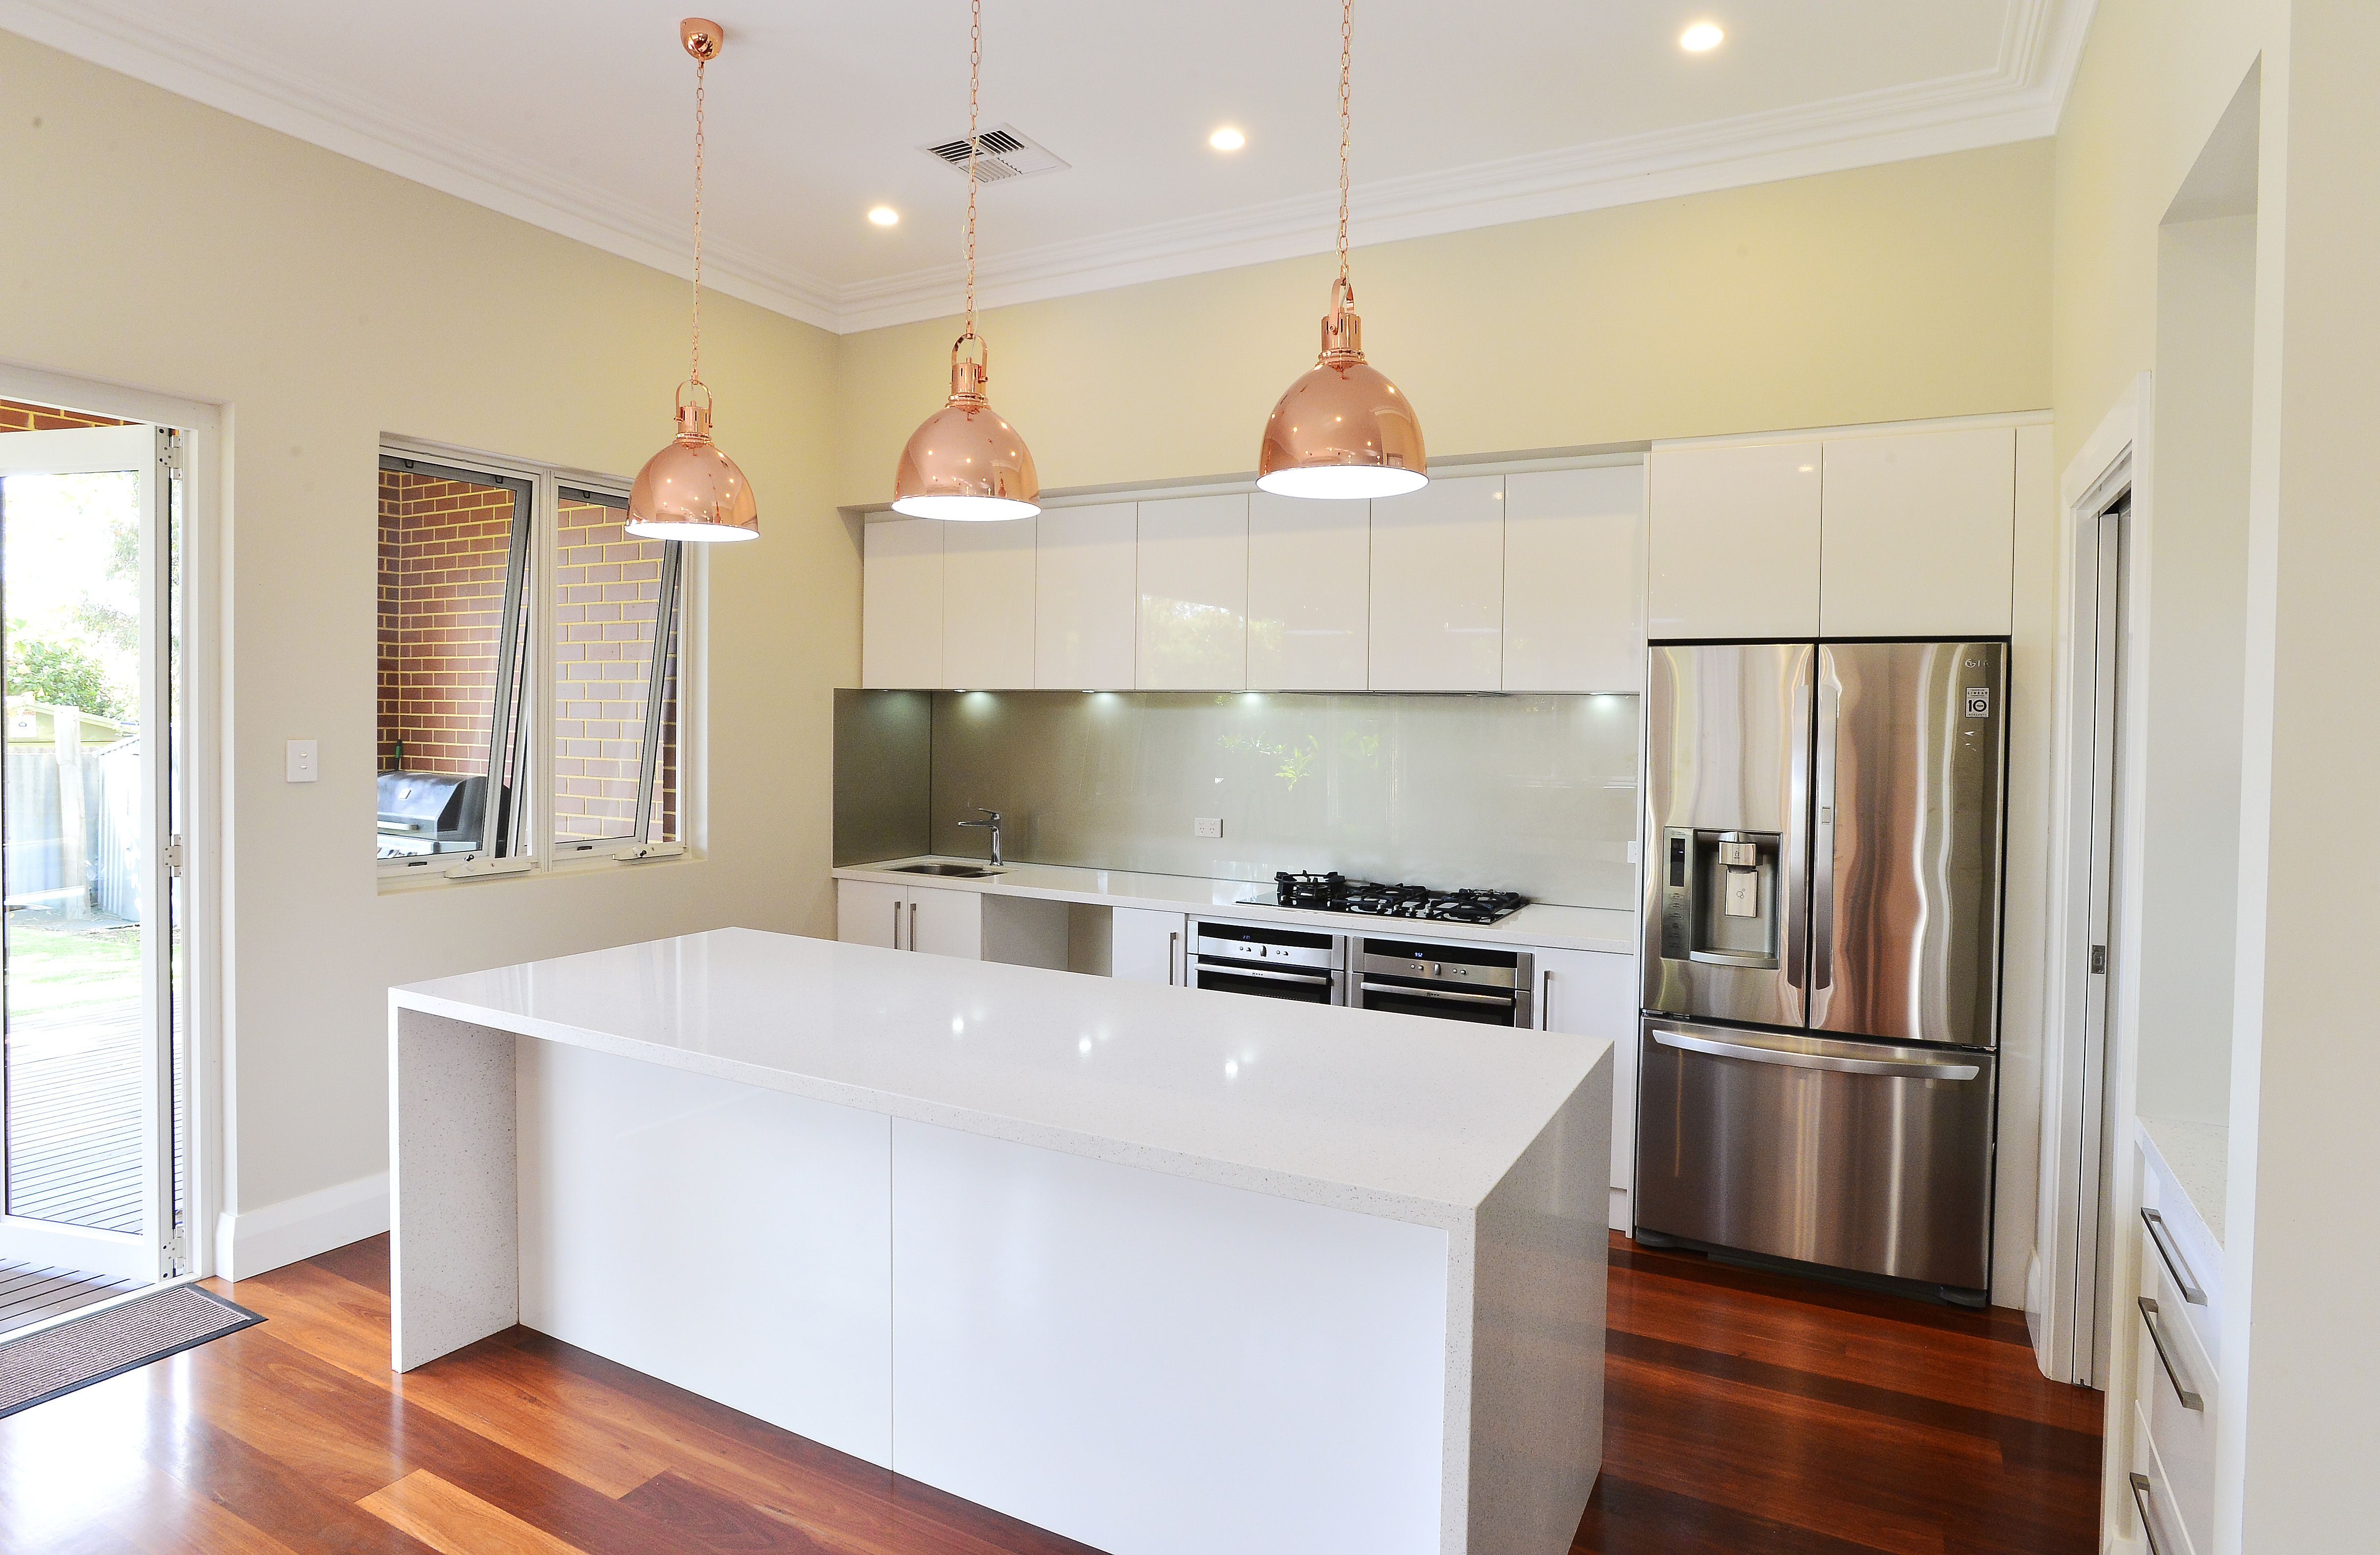 Stunning new kitchen in classic white, with stainless steel ...